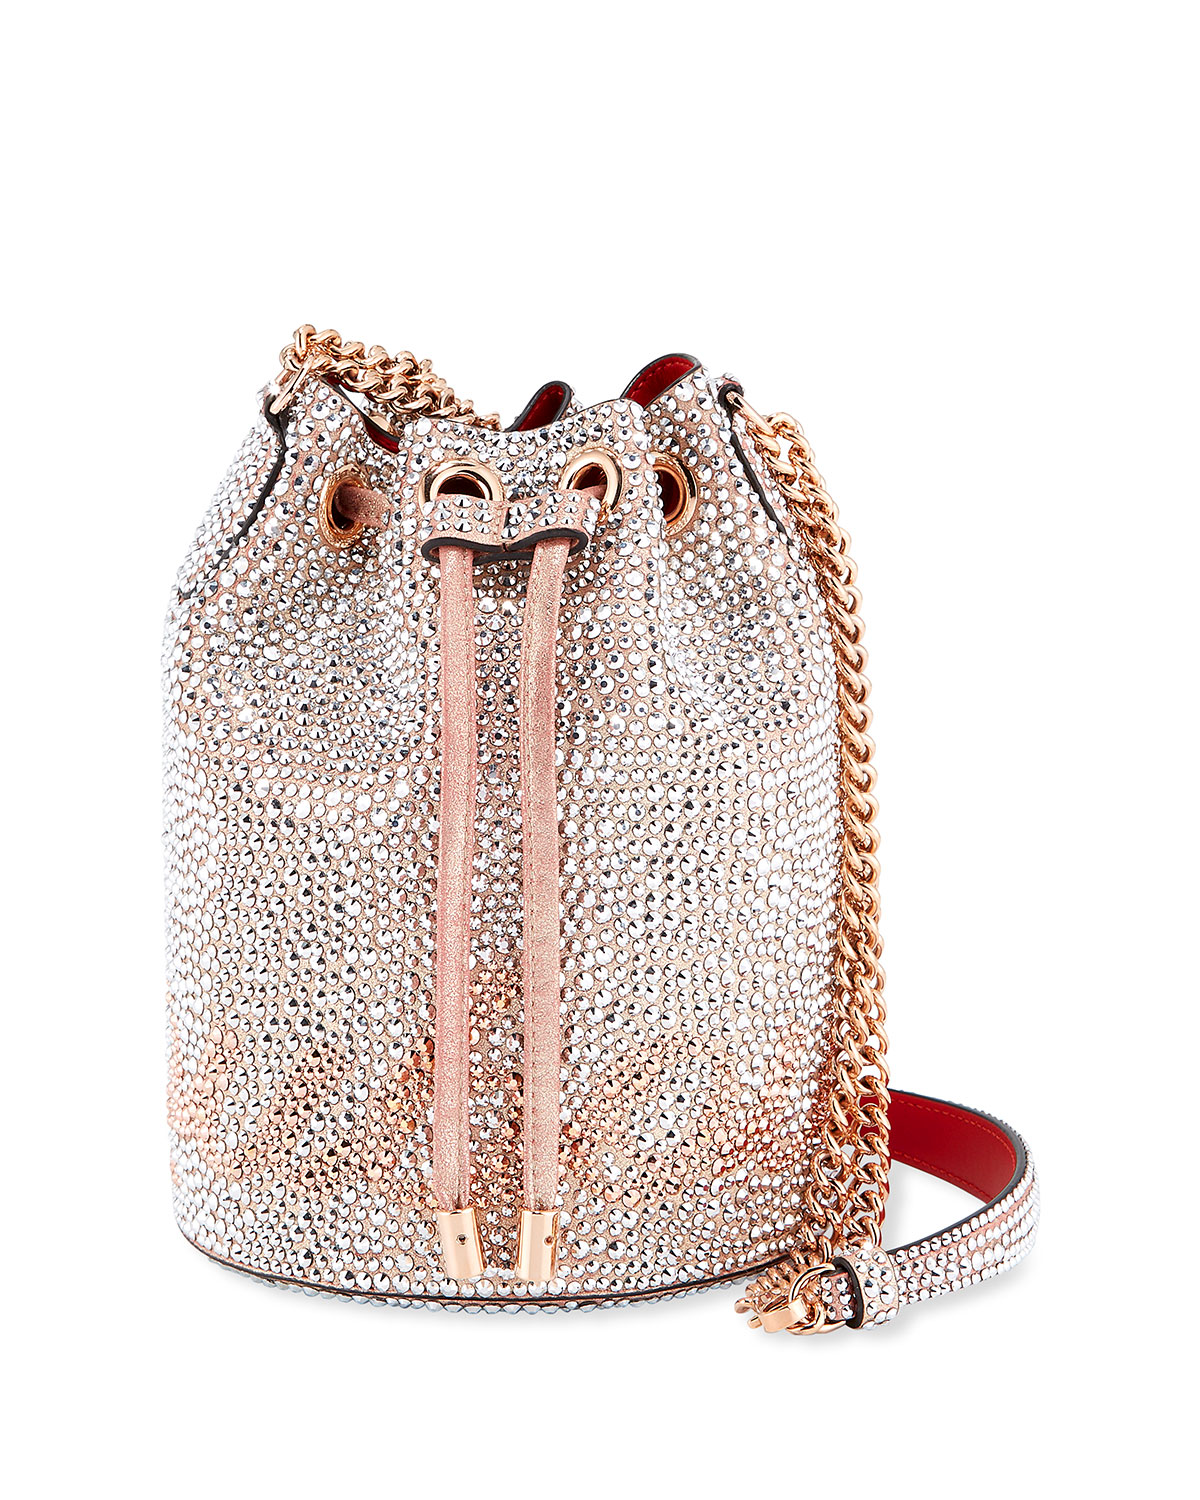 6dd49c598638 Christian Louboutin Marie Jane Crystal-Beaded Suede Bucket Bag ...